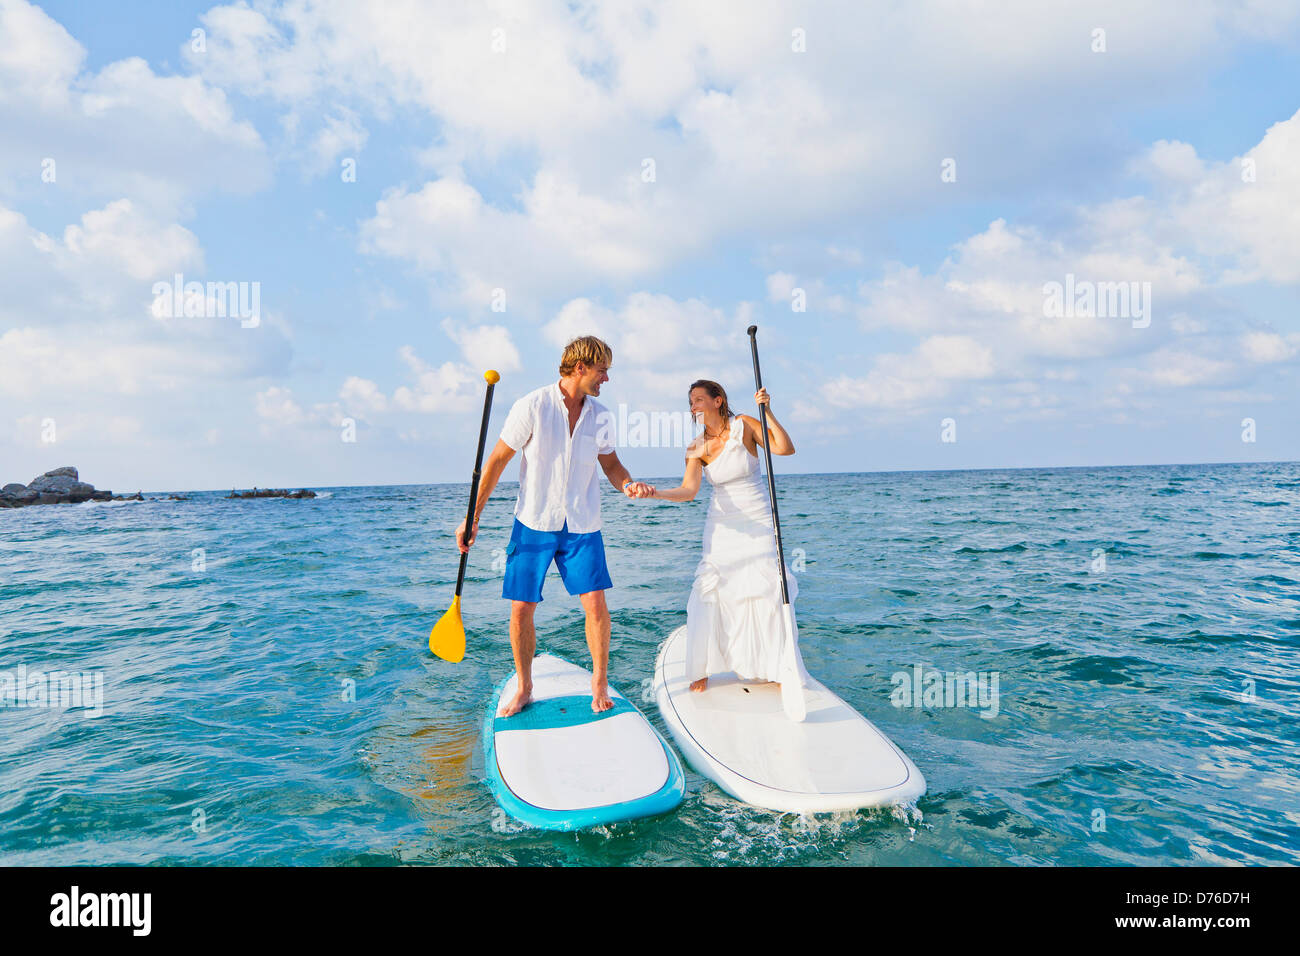 Dressed up mad and woman riding paddle boards Stock Photo